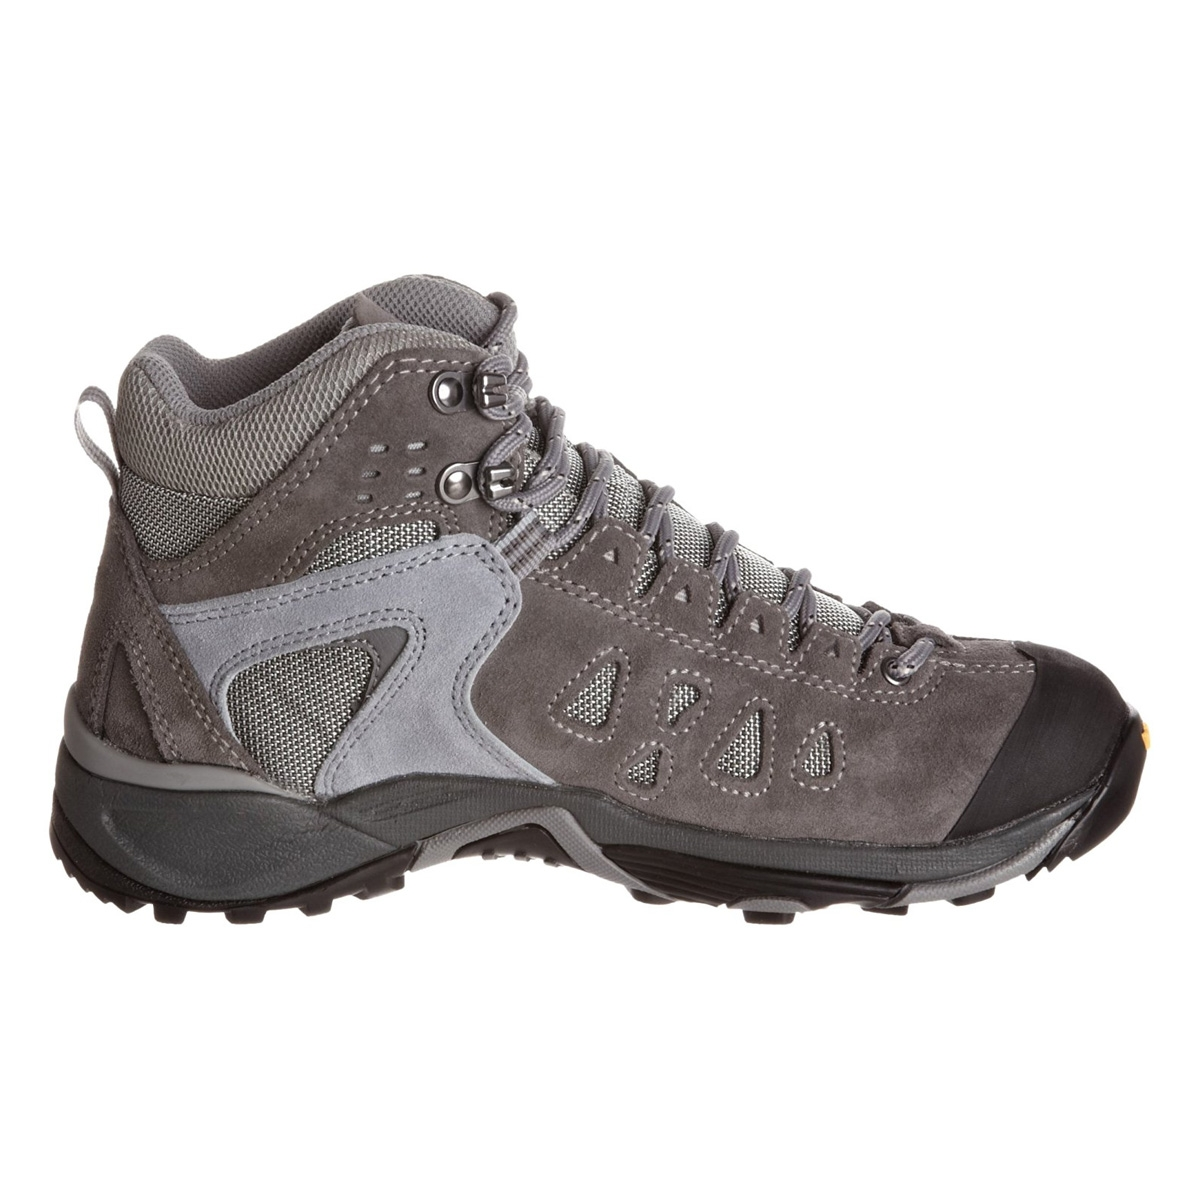 2f466948b54 Zamberlan 150 Zenith Mid GTX RR WNS Walking Boots (Women's) - Grey / Light  Blue